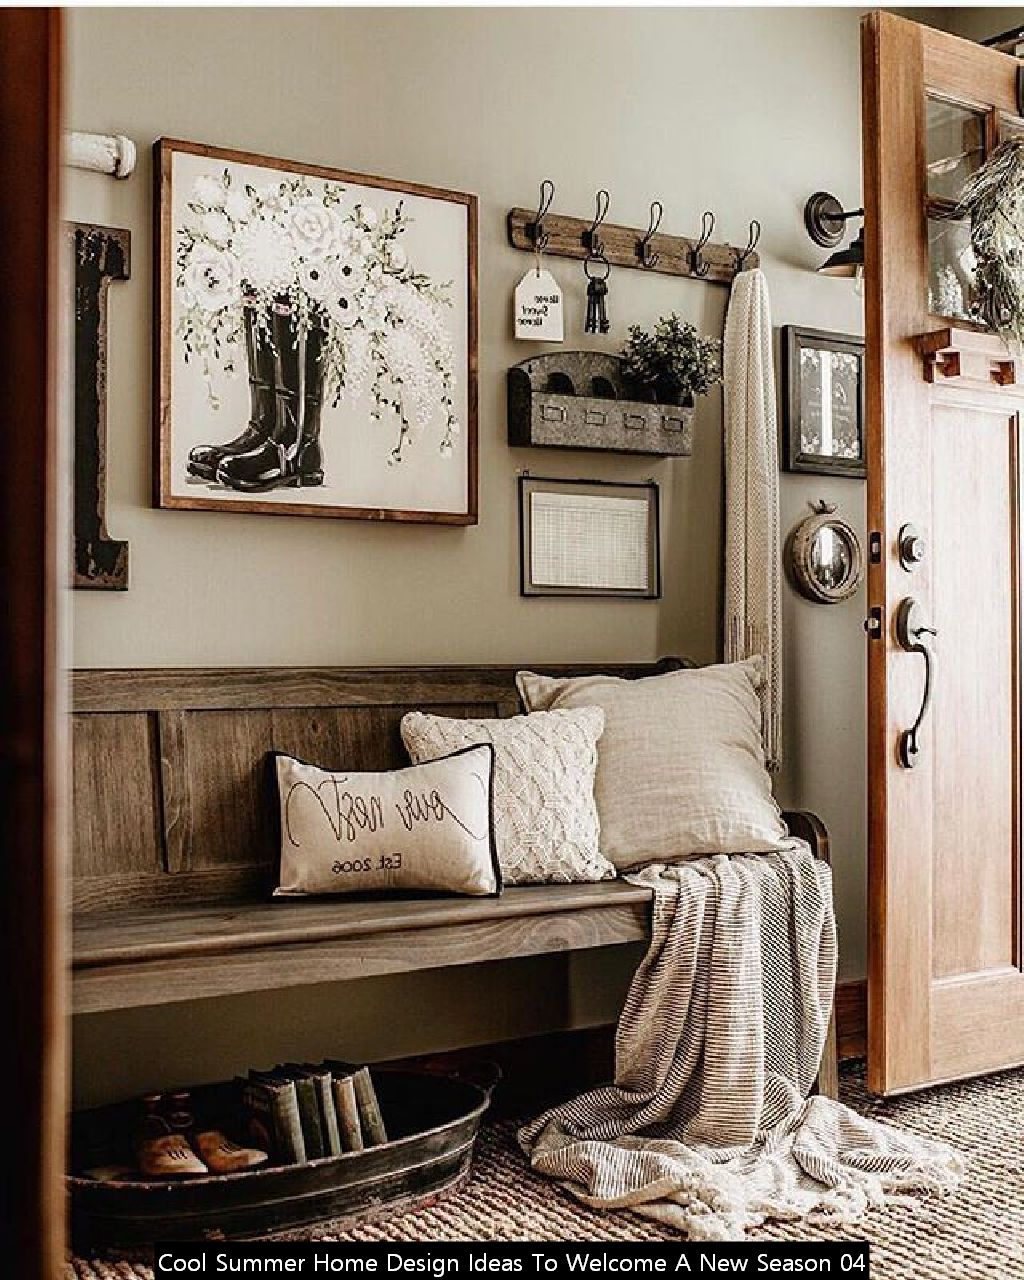 Cool Summer Home Design Ideas To Welcome A New Season 04